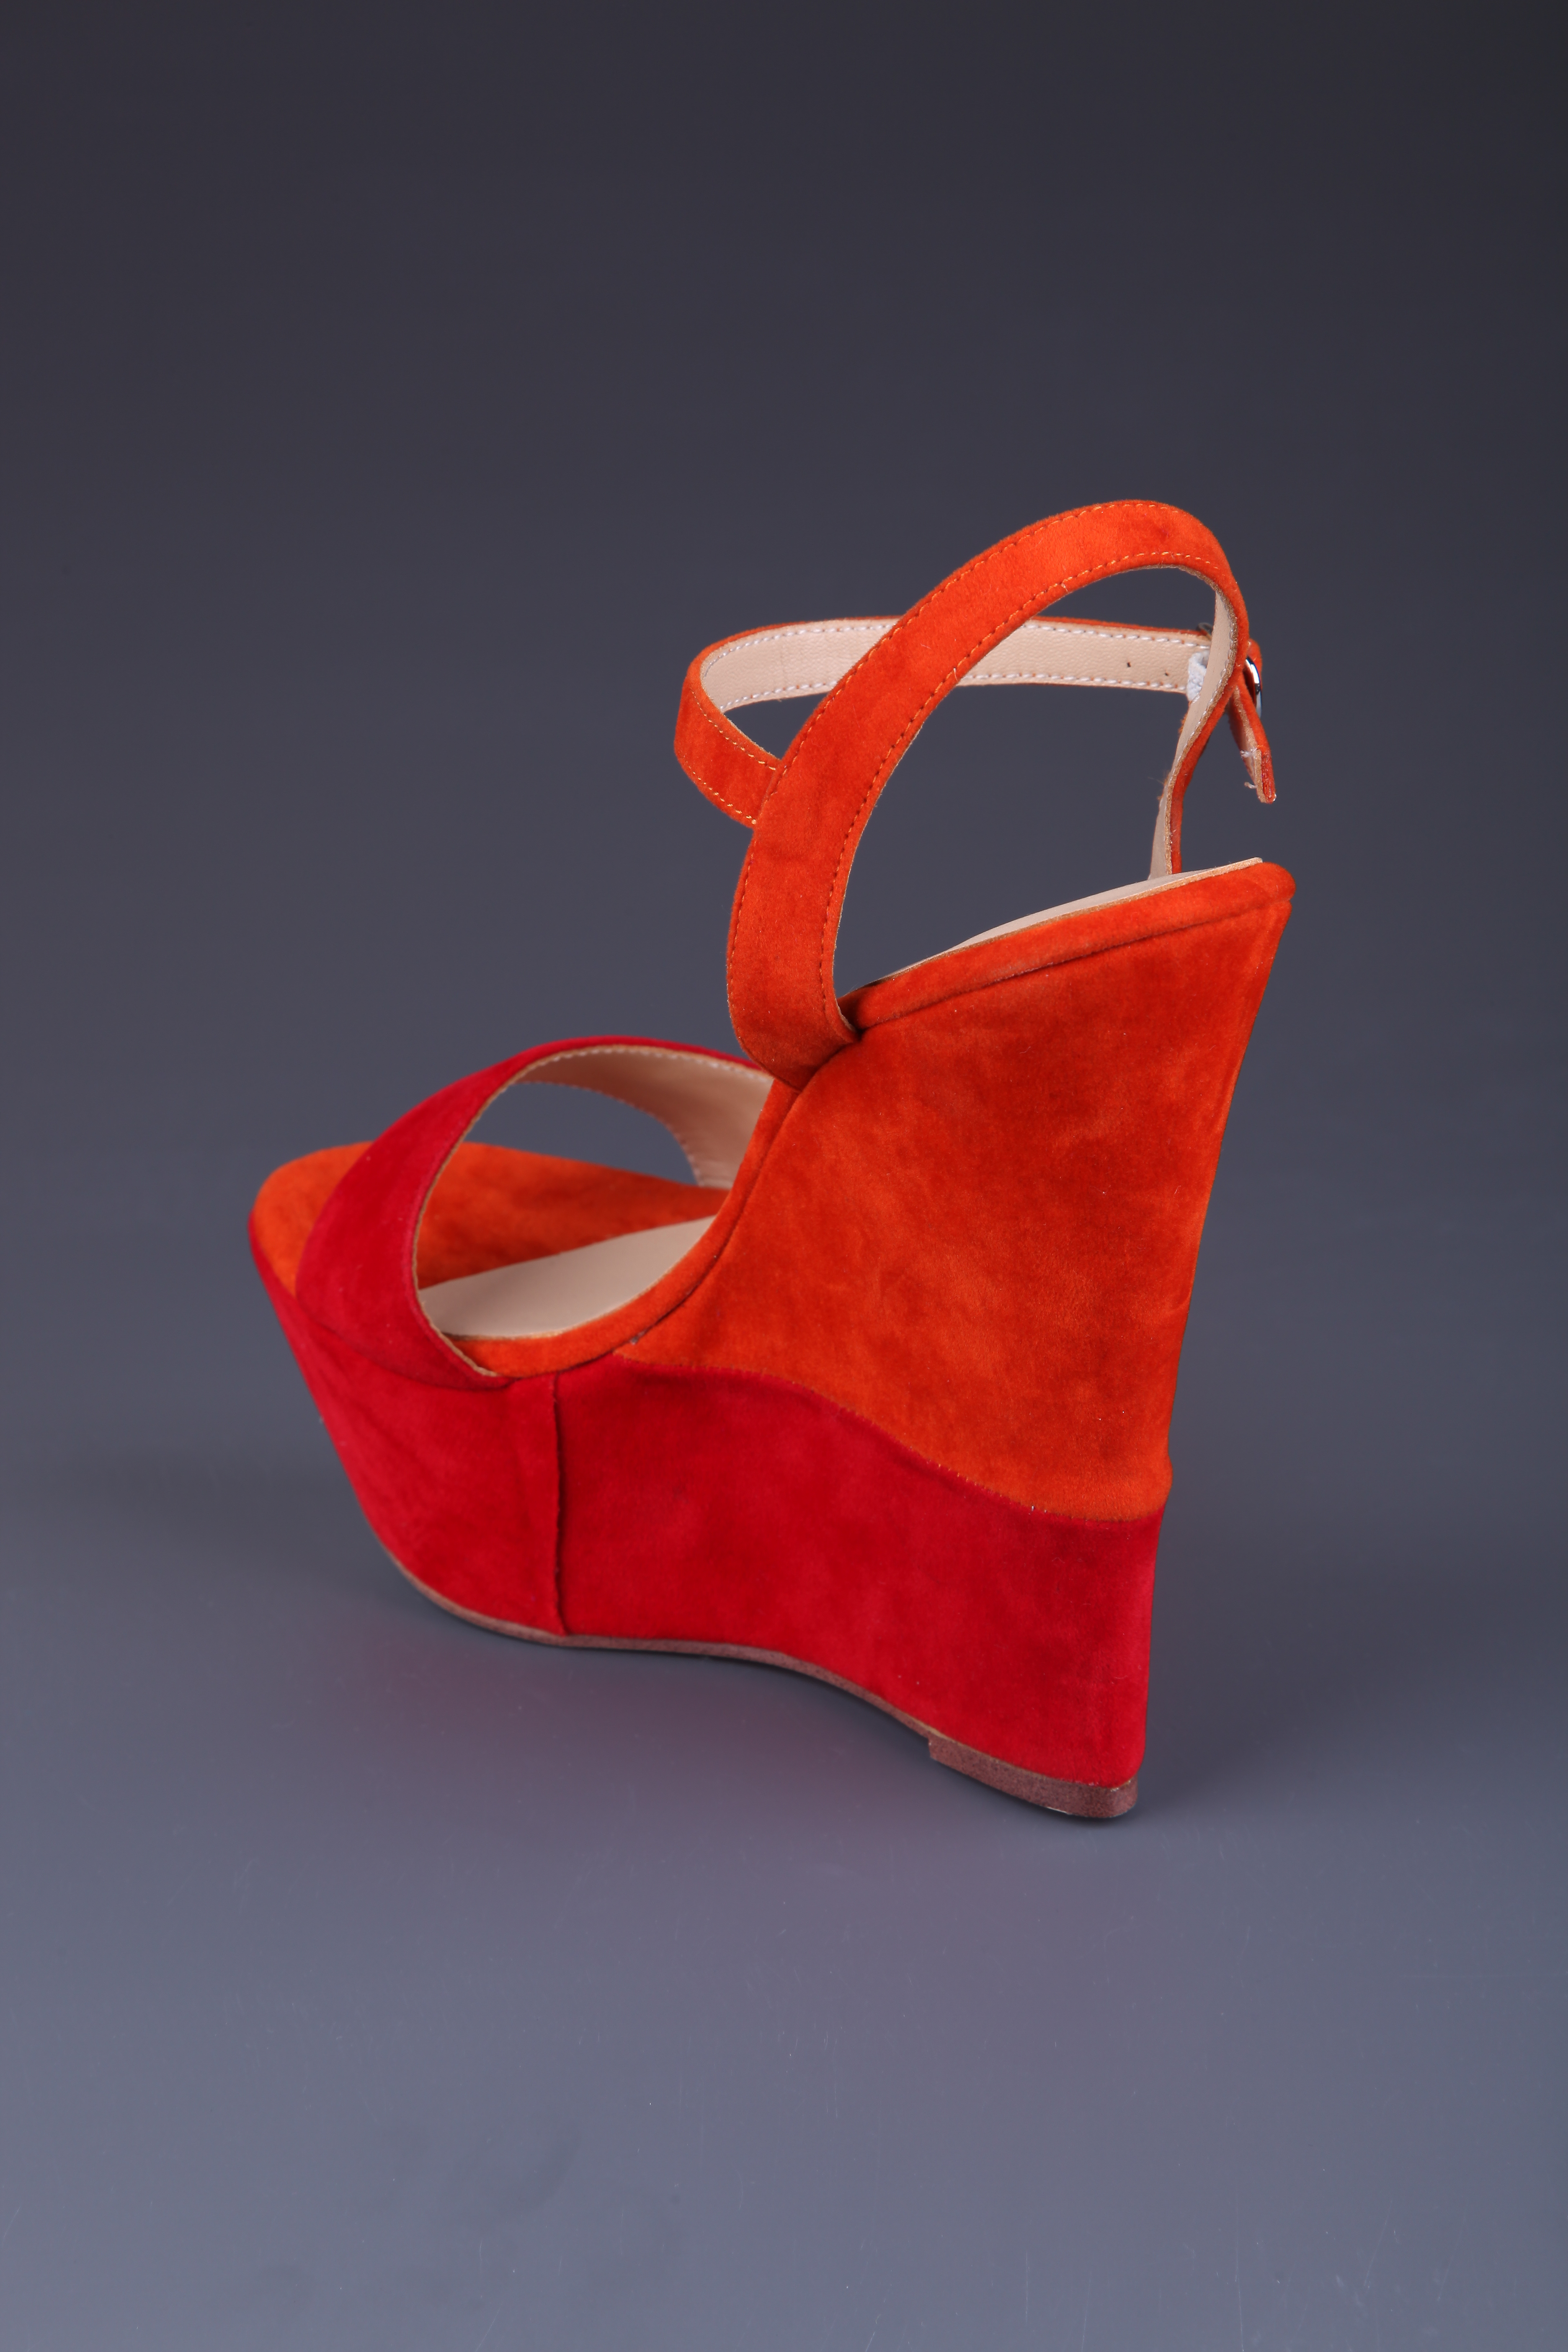 2f0ca8b35c Red Wedge Sandals Suede Women's Ankle Strap Shoes - Milanoo.com